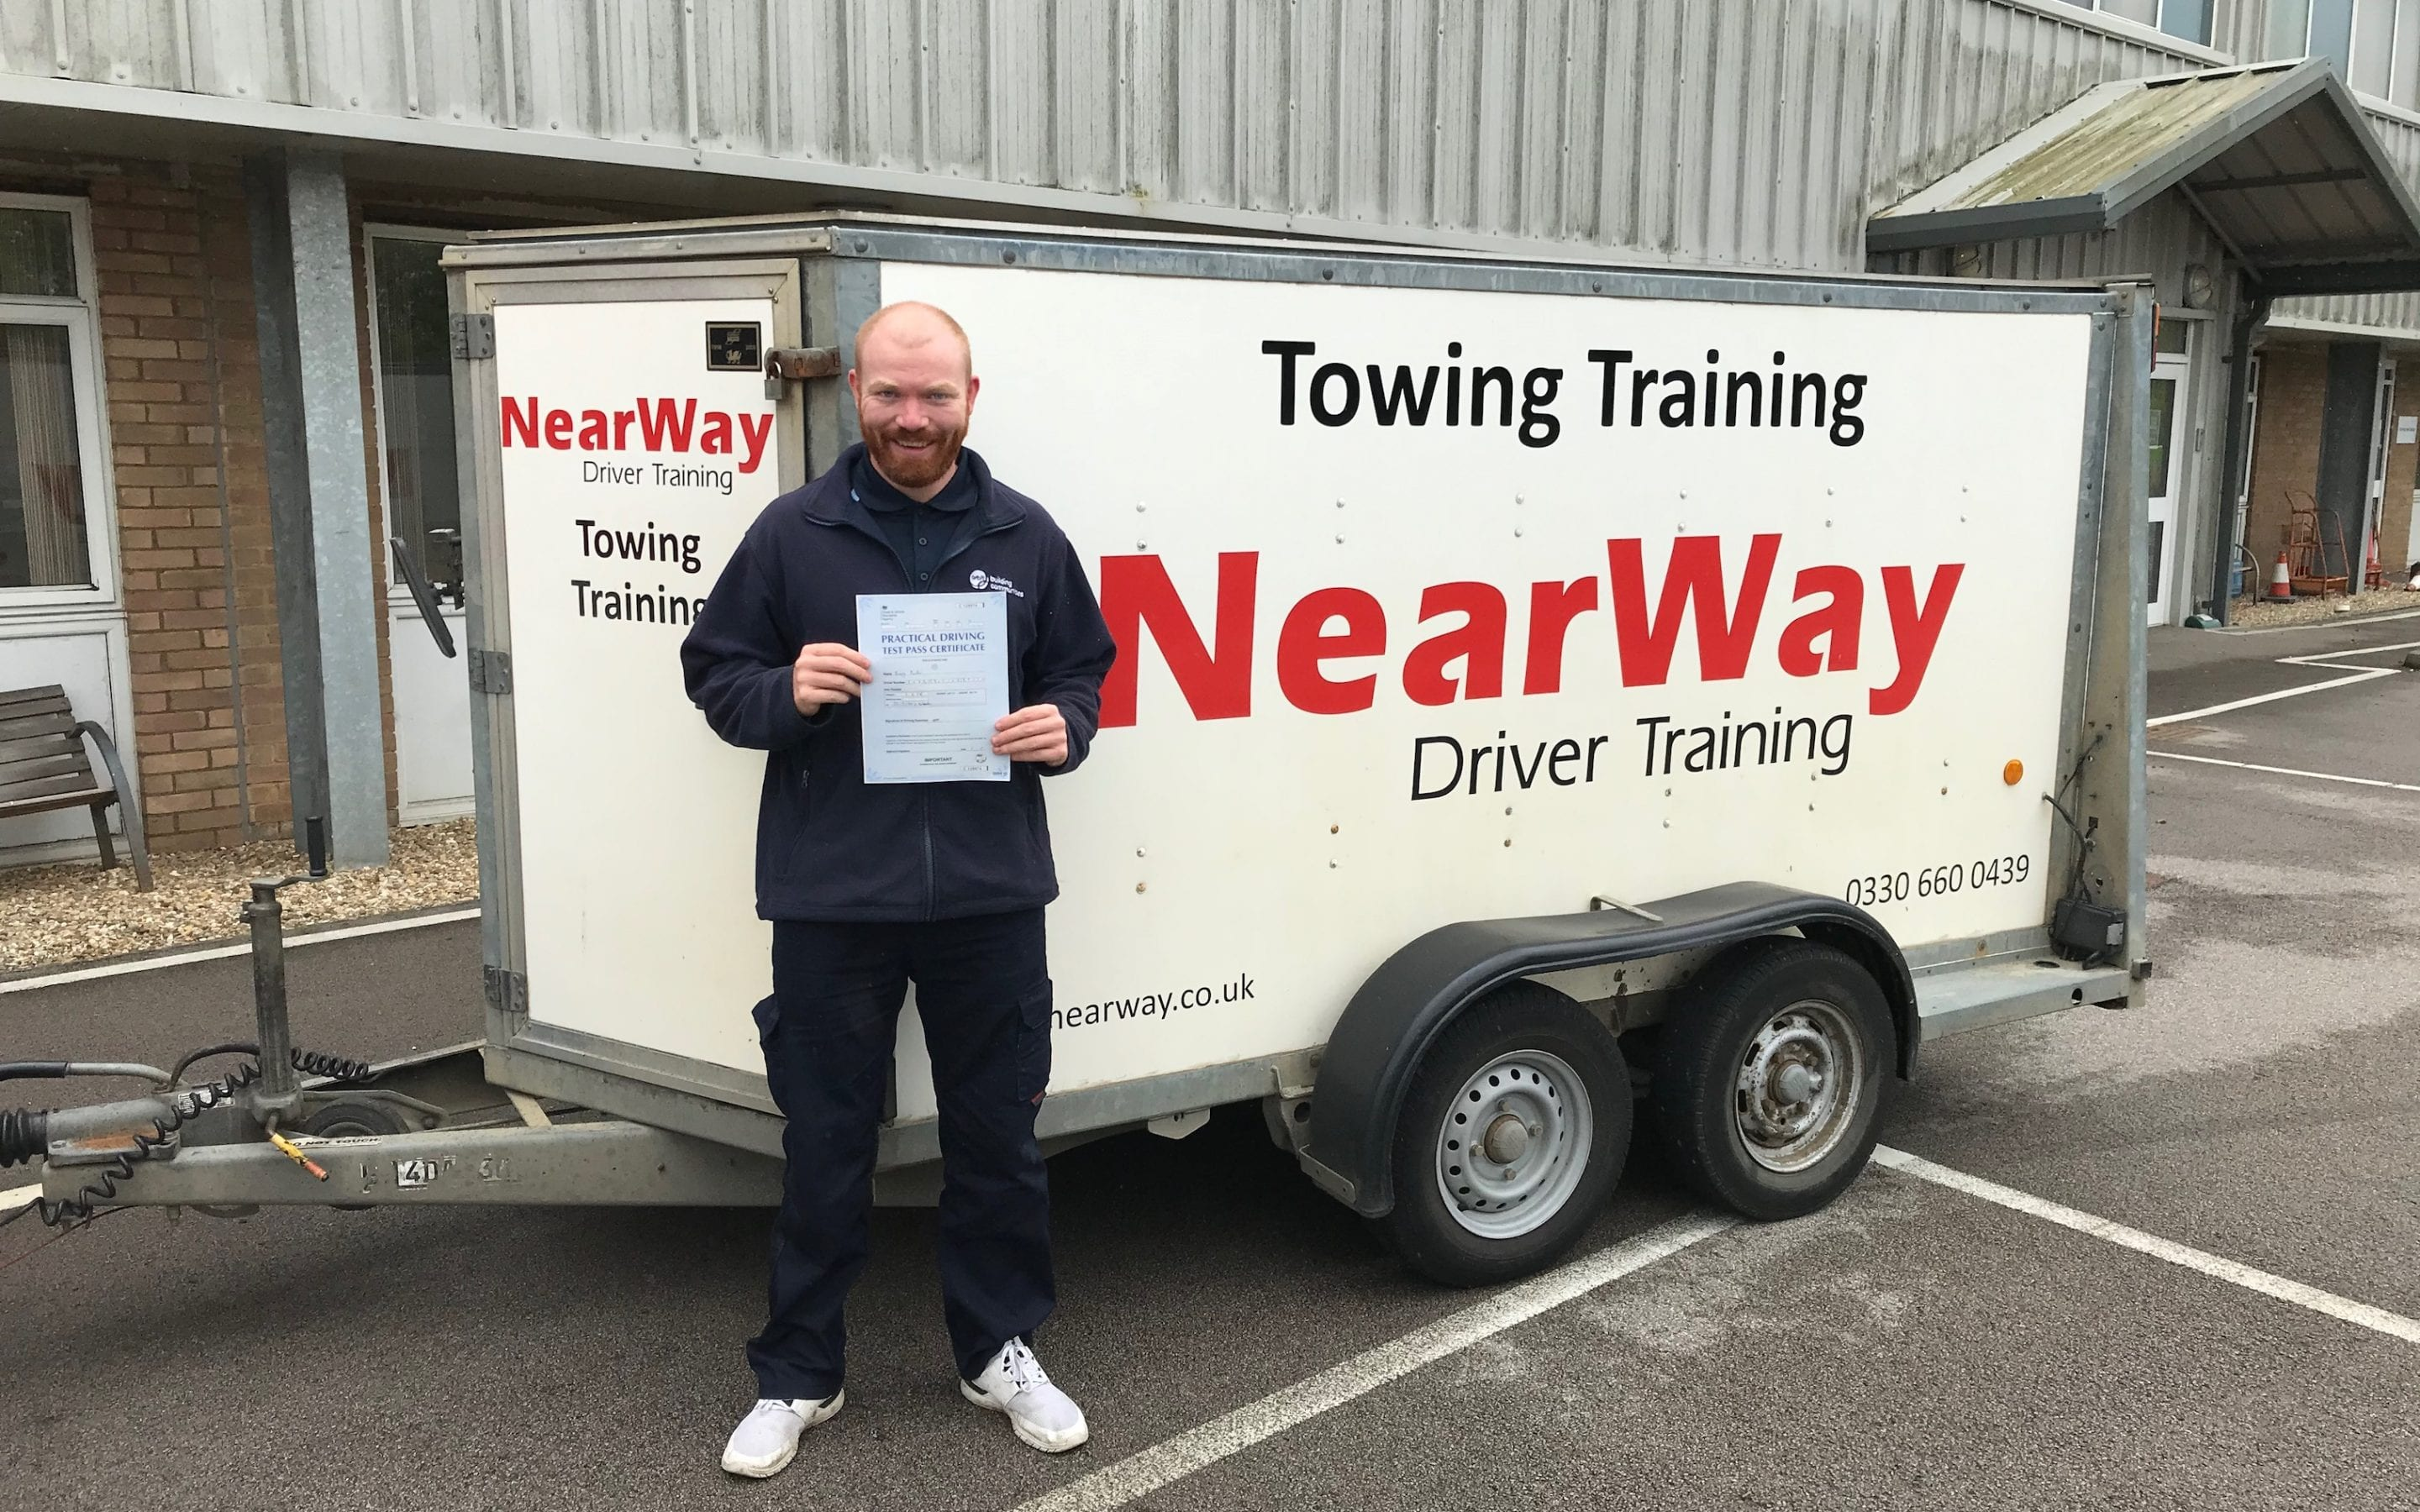 Towing training course